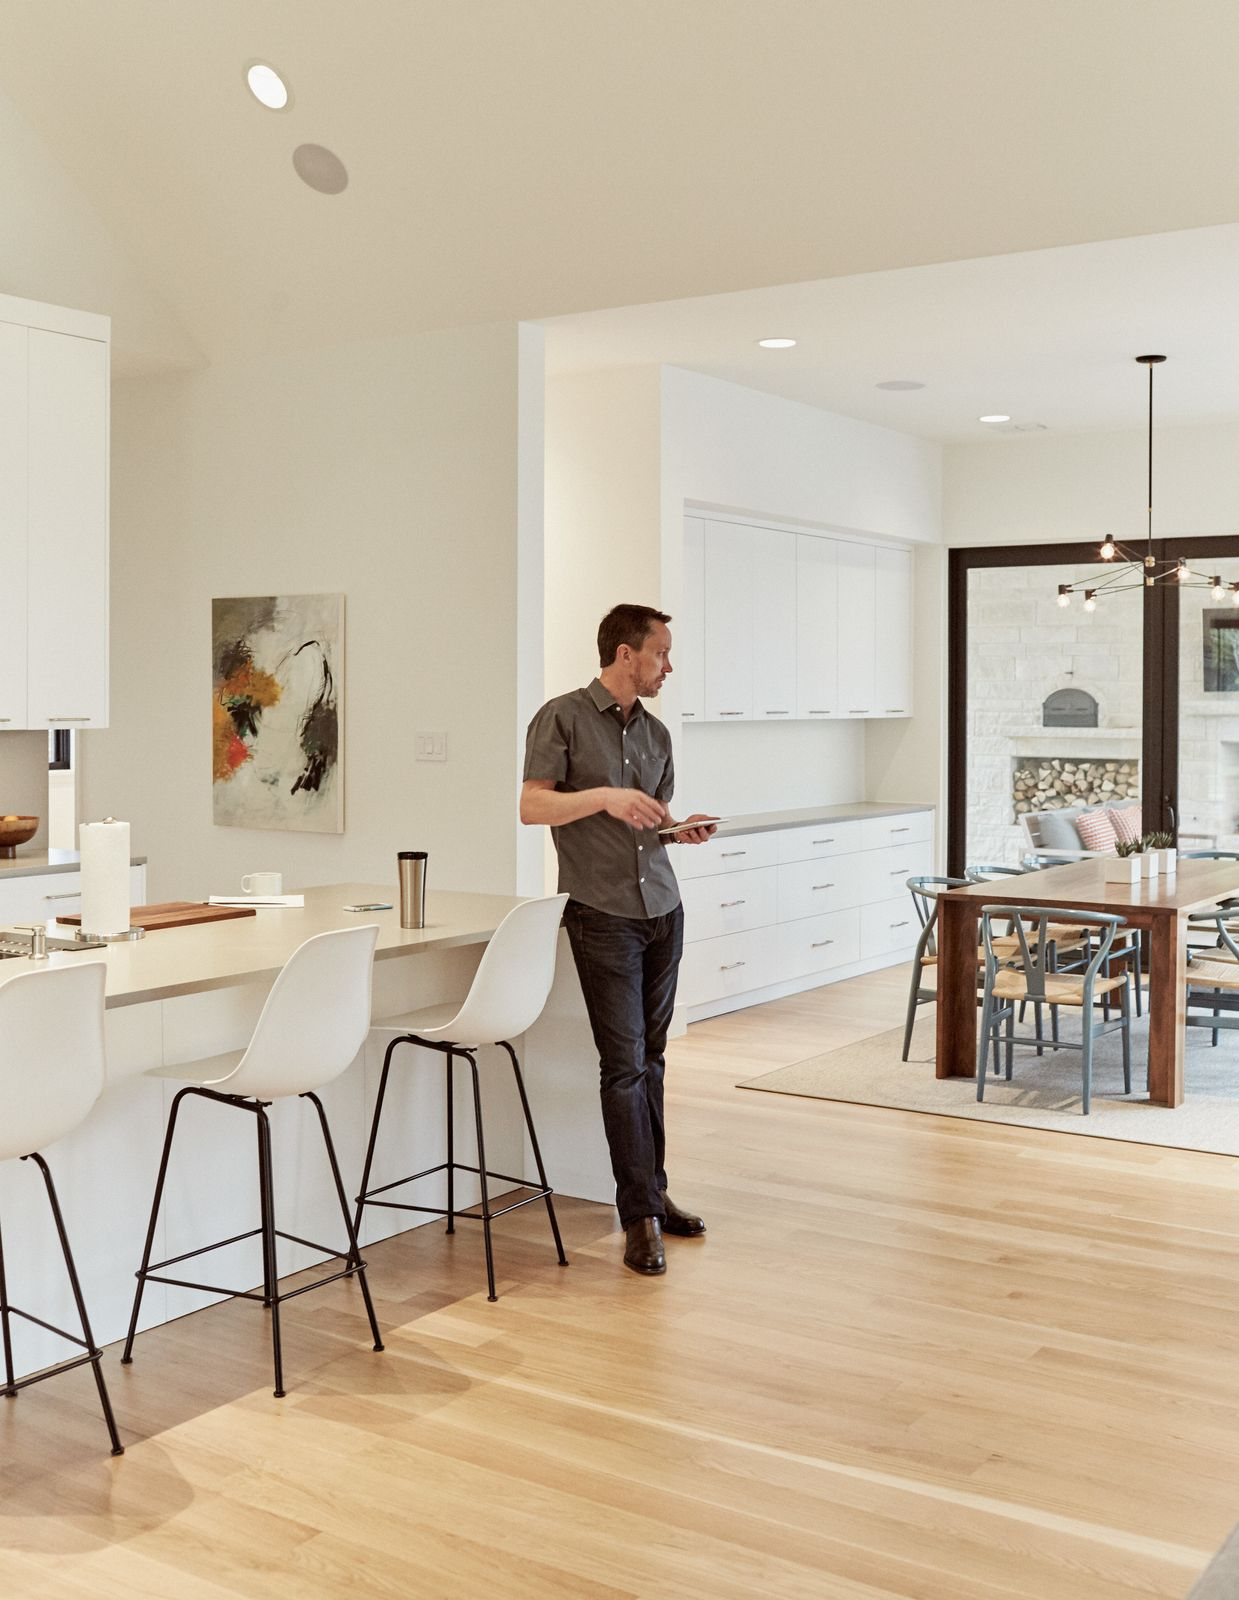 A Set Of Eames Molded Plastic Bar Stools Line The Caesarstone Countertop In